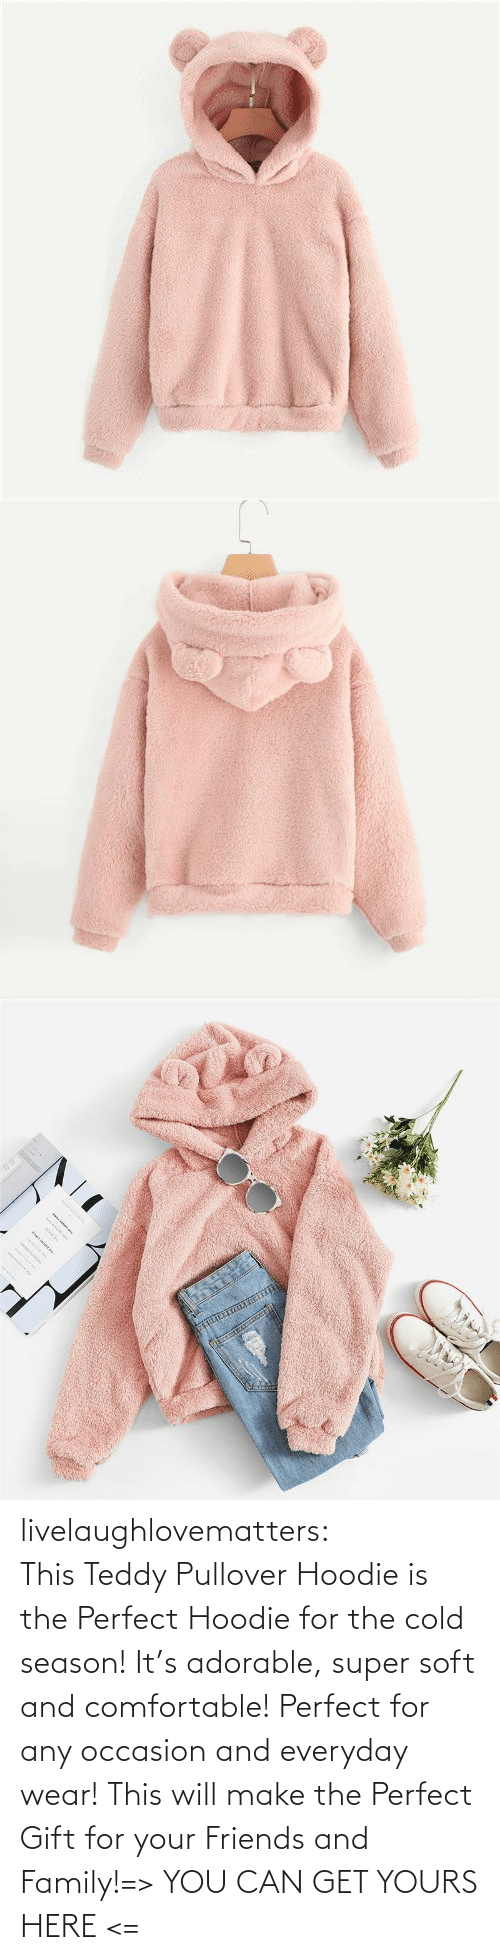 soft: www.w. livelaughlovematters:  This Teddy Pullover Hoodie is the Perfect Hoodie for the cold season! It's adorable, super soft and comfortable! Perfect for any occasion and everyday wear! This will make the Perfect Gift for your Friends and Family!=> YOU CAN GET YOURS HERE <=